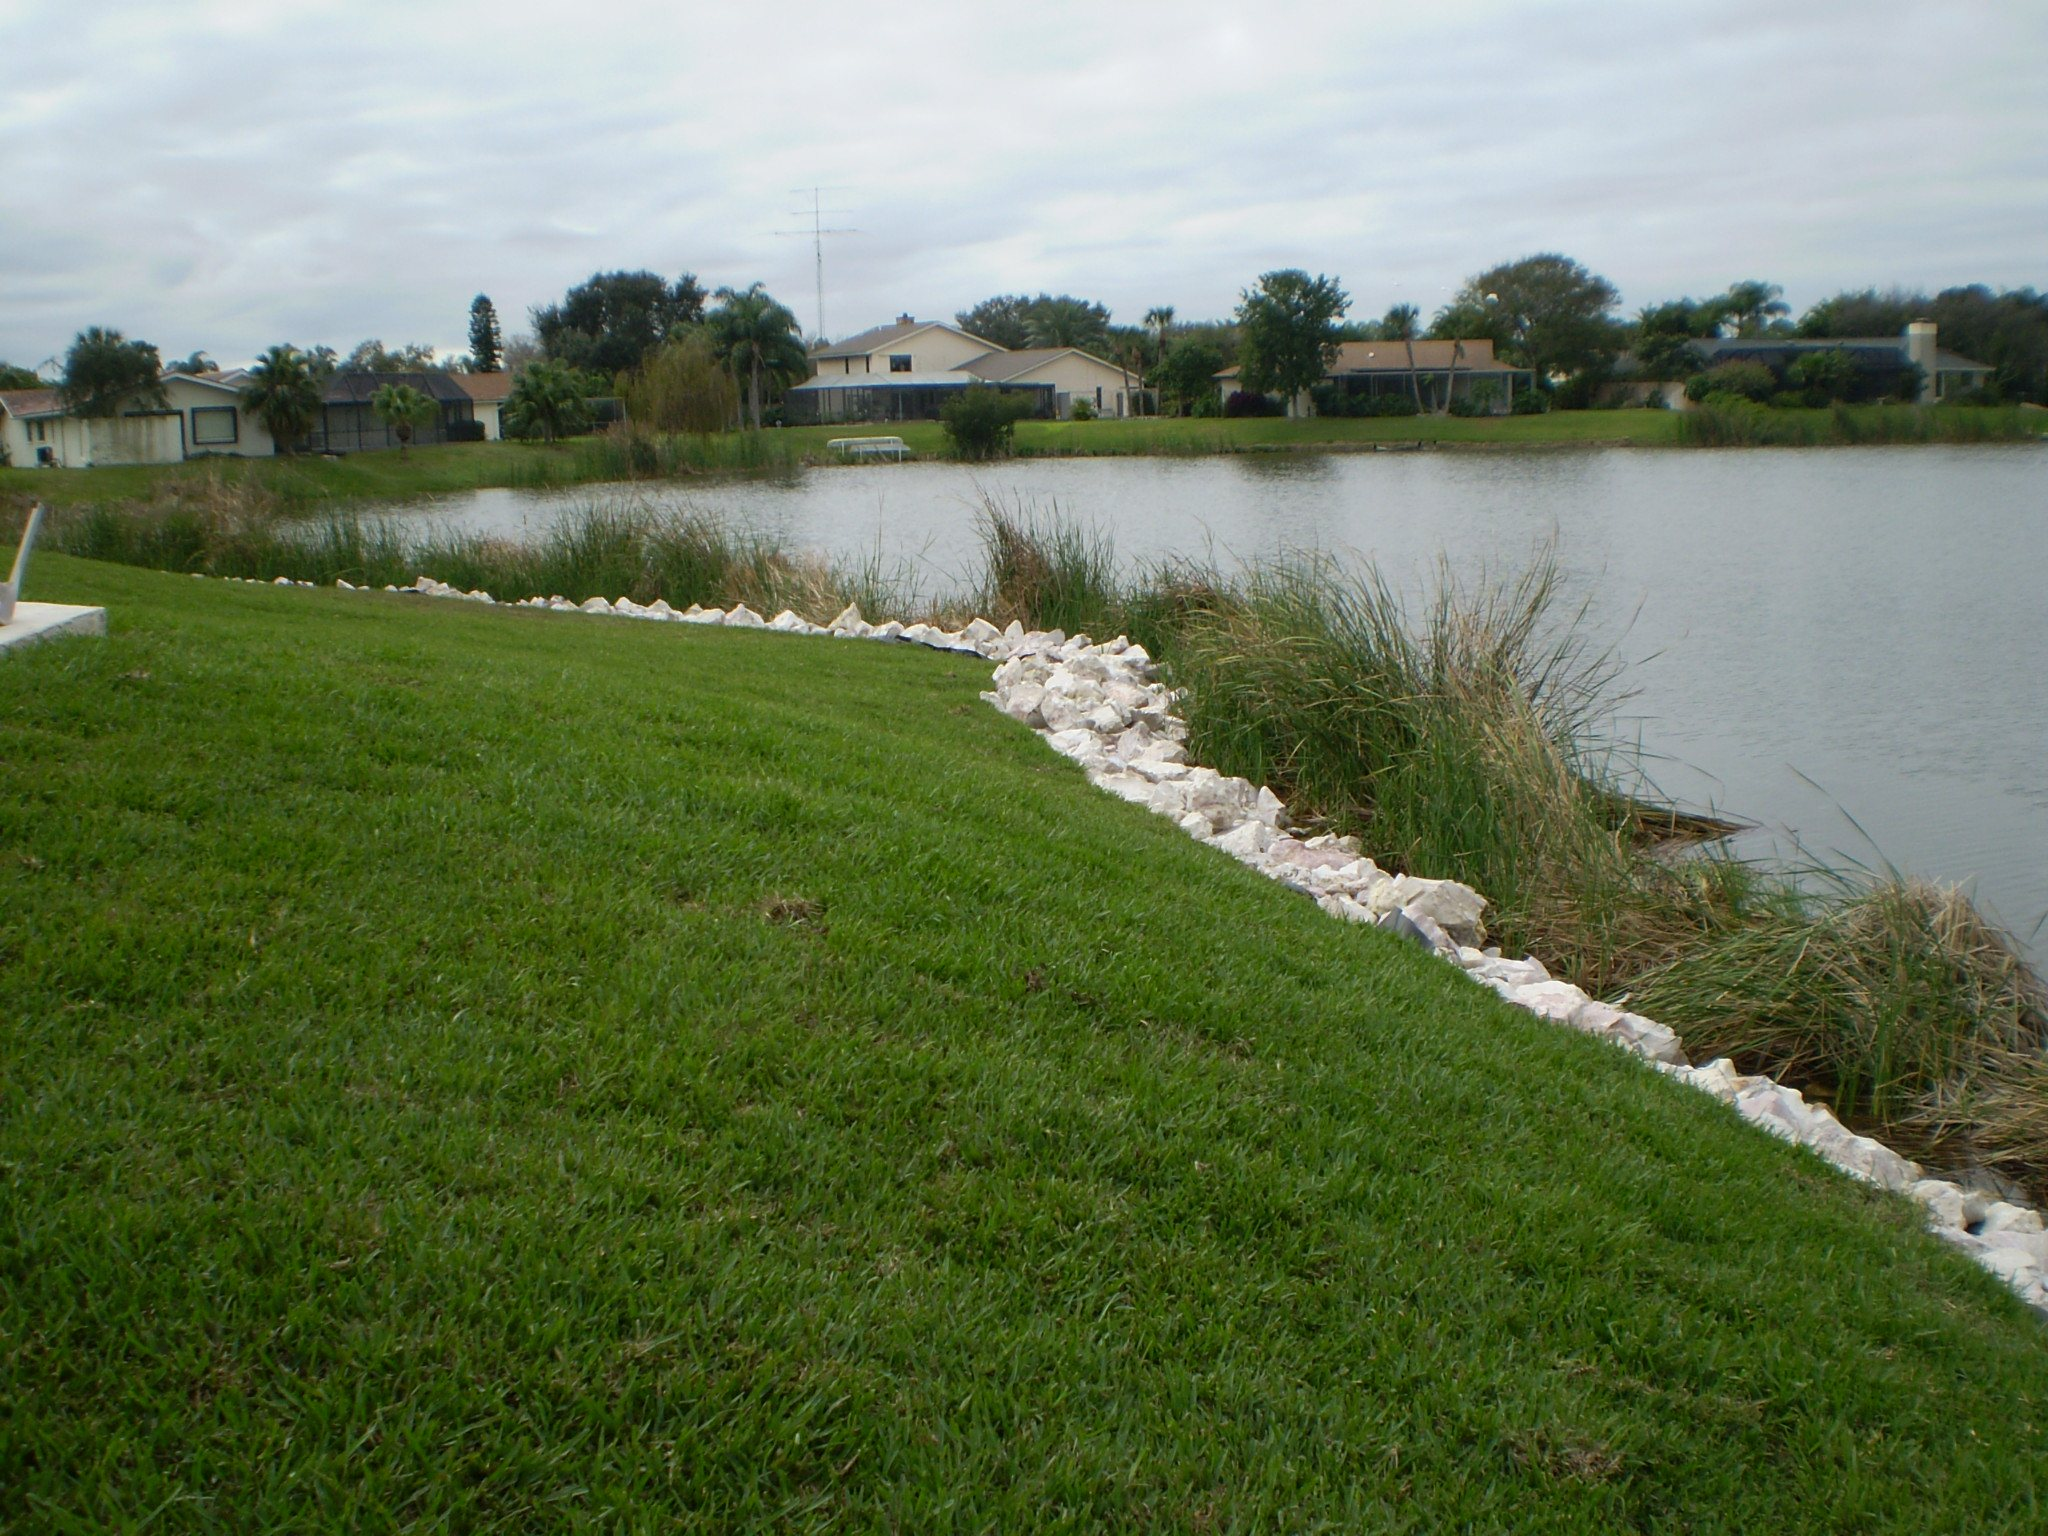 Limestone rip rap rock along shoreline of lake at a golf course